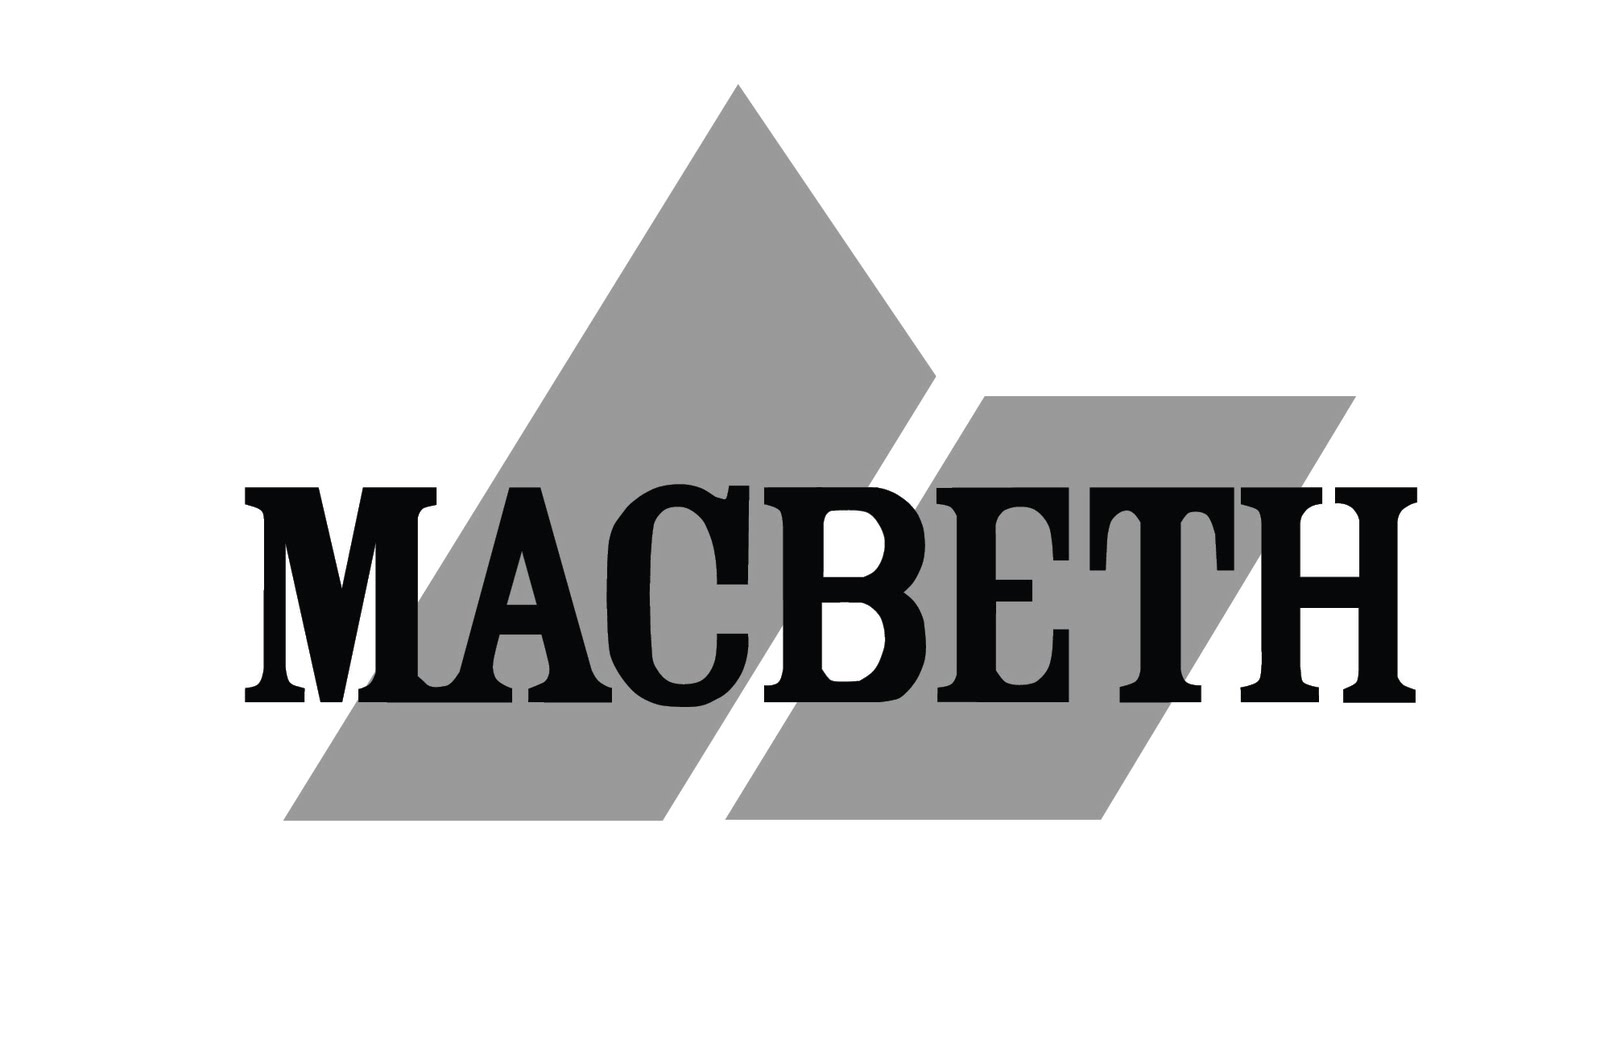 macbeth B - dark.tshirtdesignMacbeth Logo